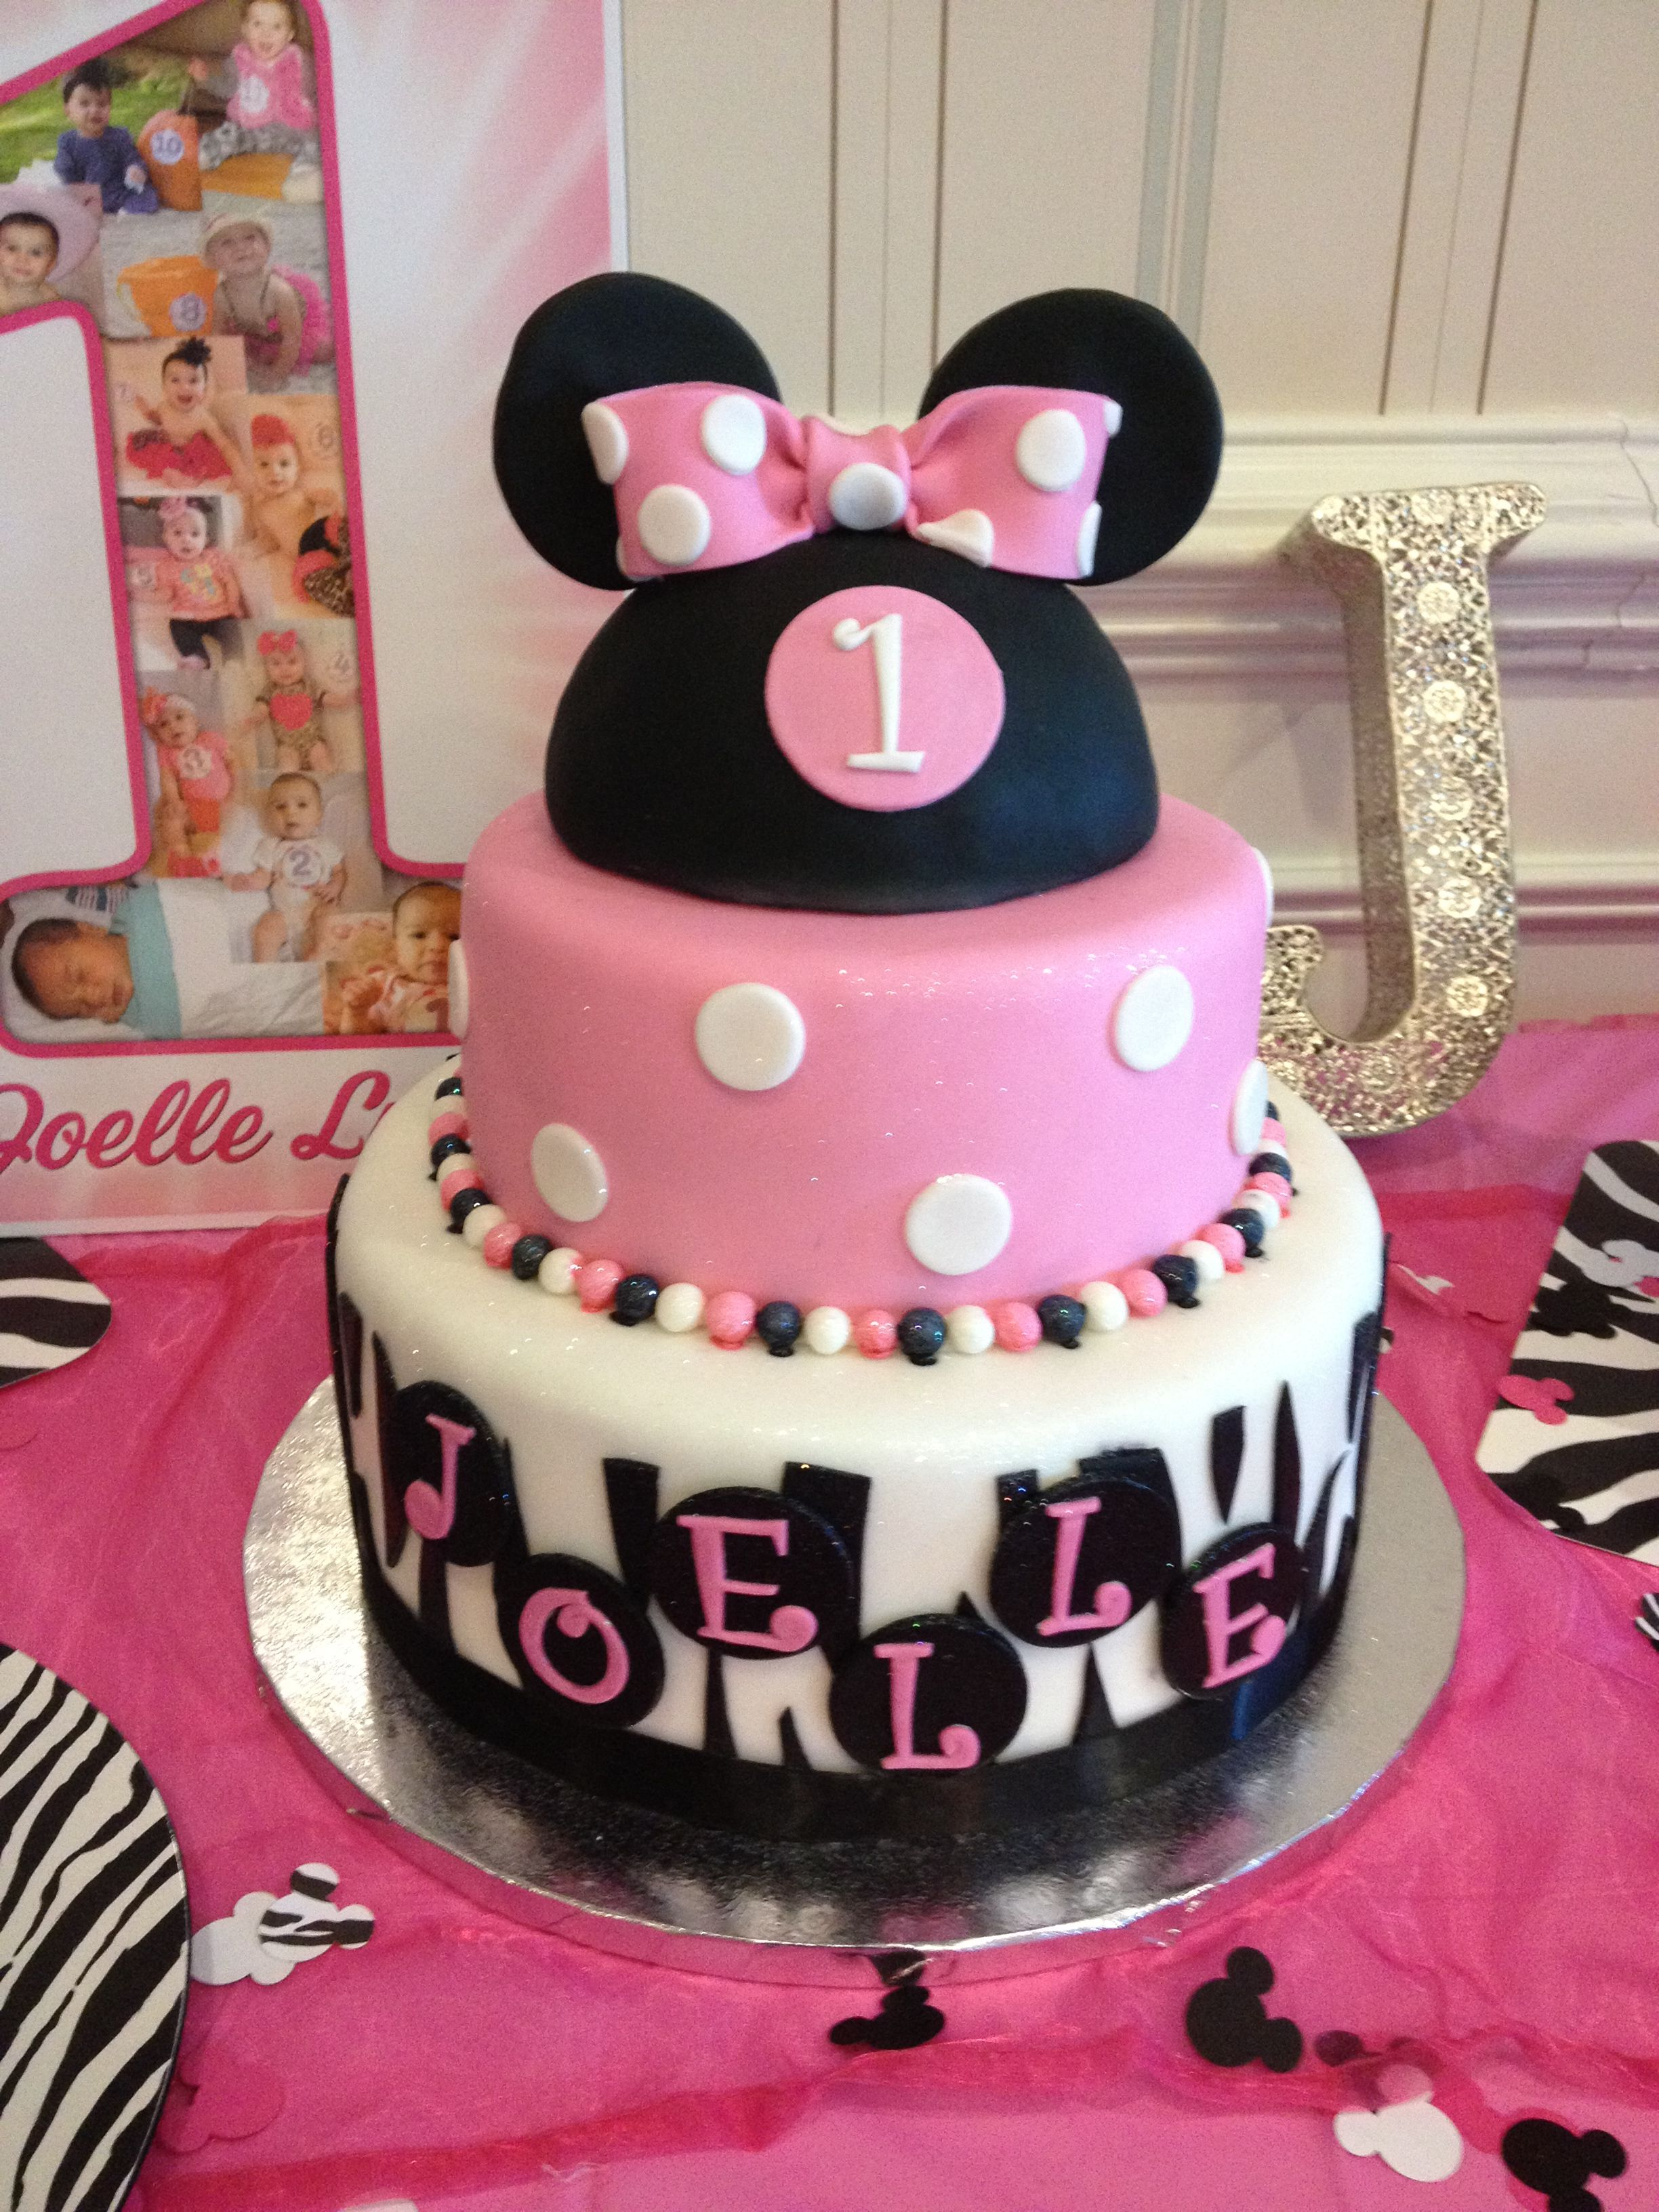 Yummy Dessert Table For My Baby Girls 1st Birthday Party Minnie Mouse Zebra Theme Desserts Pro First Birthday Cakes Baby Girl 1st Birthday 1st Birthday Girls